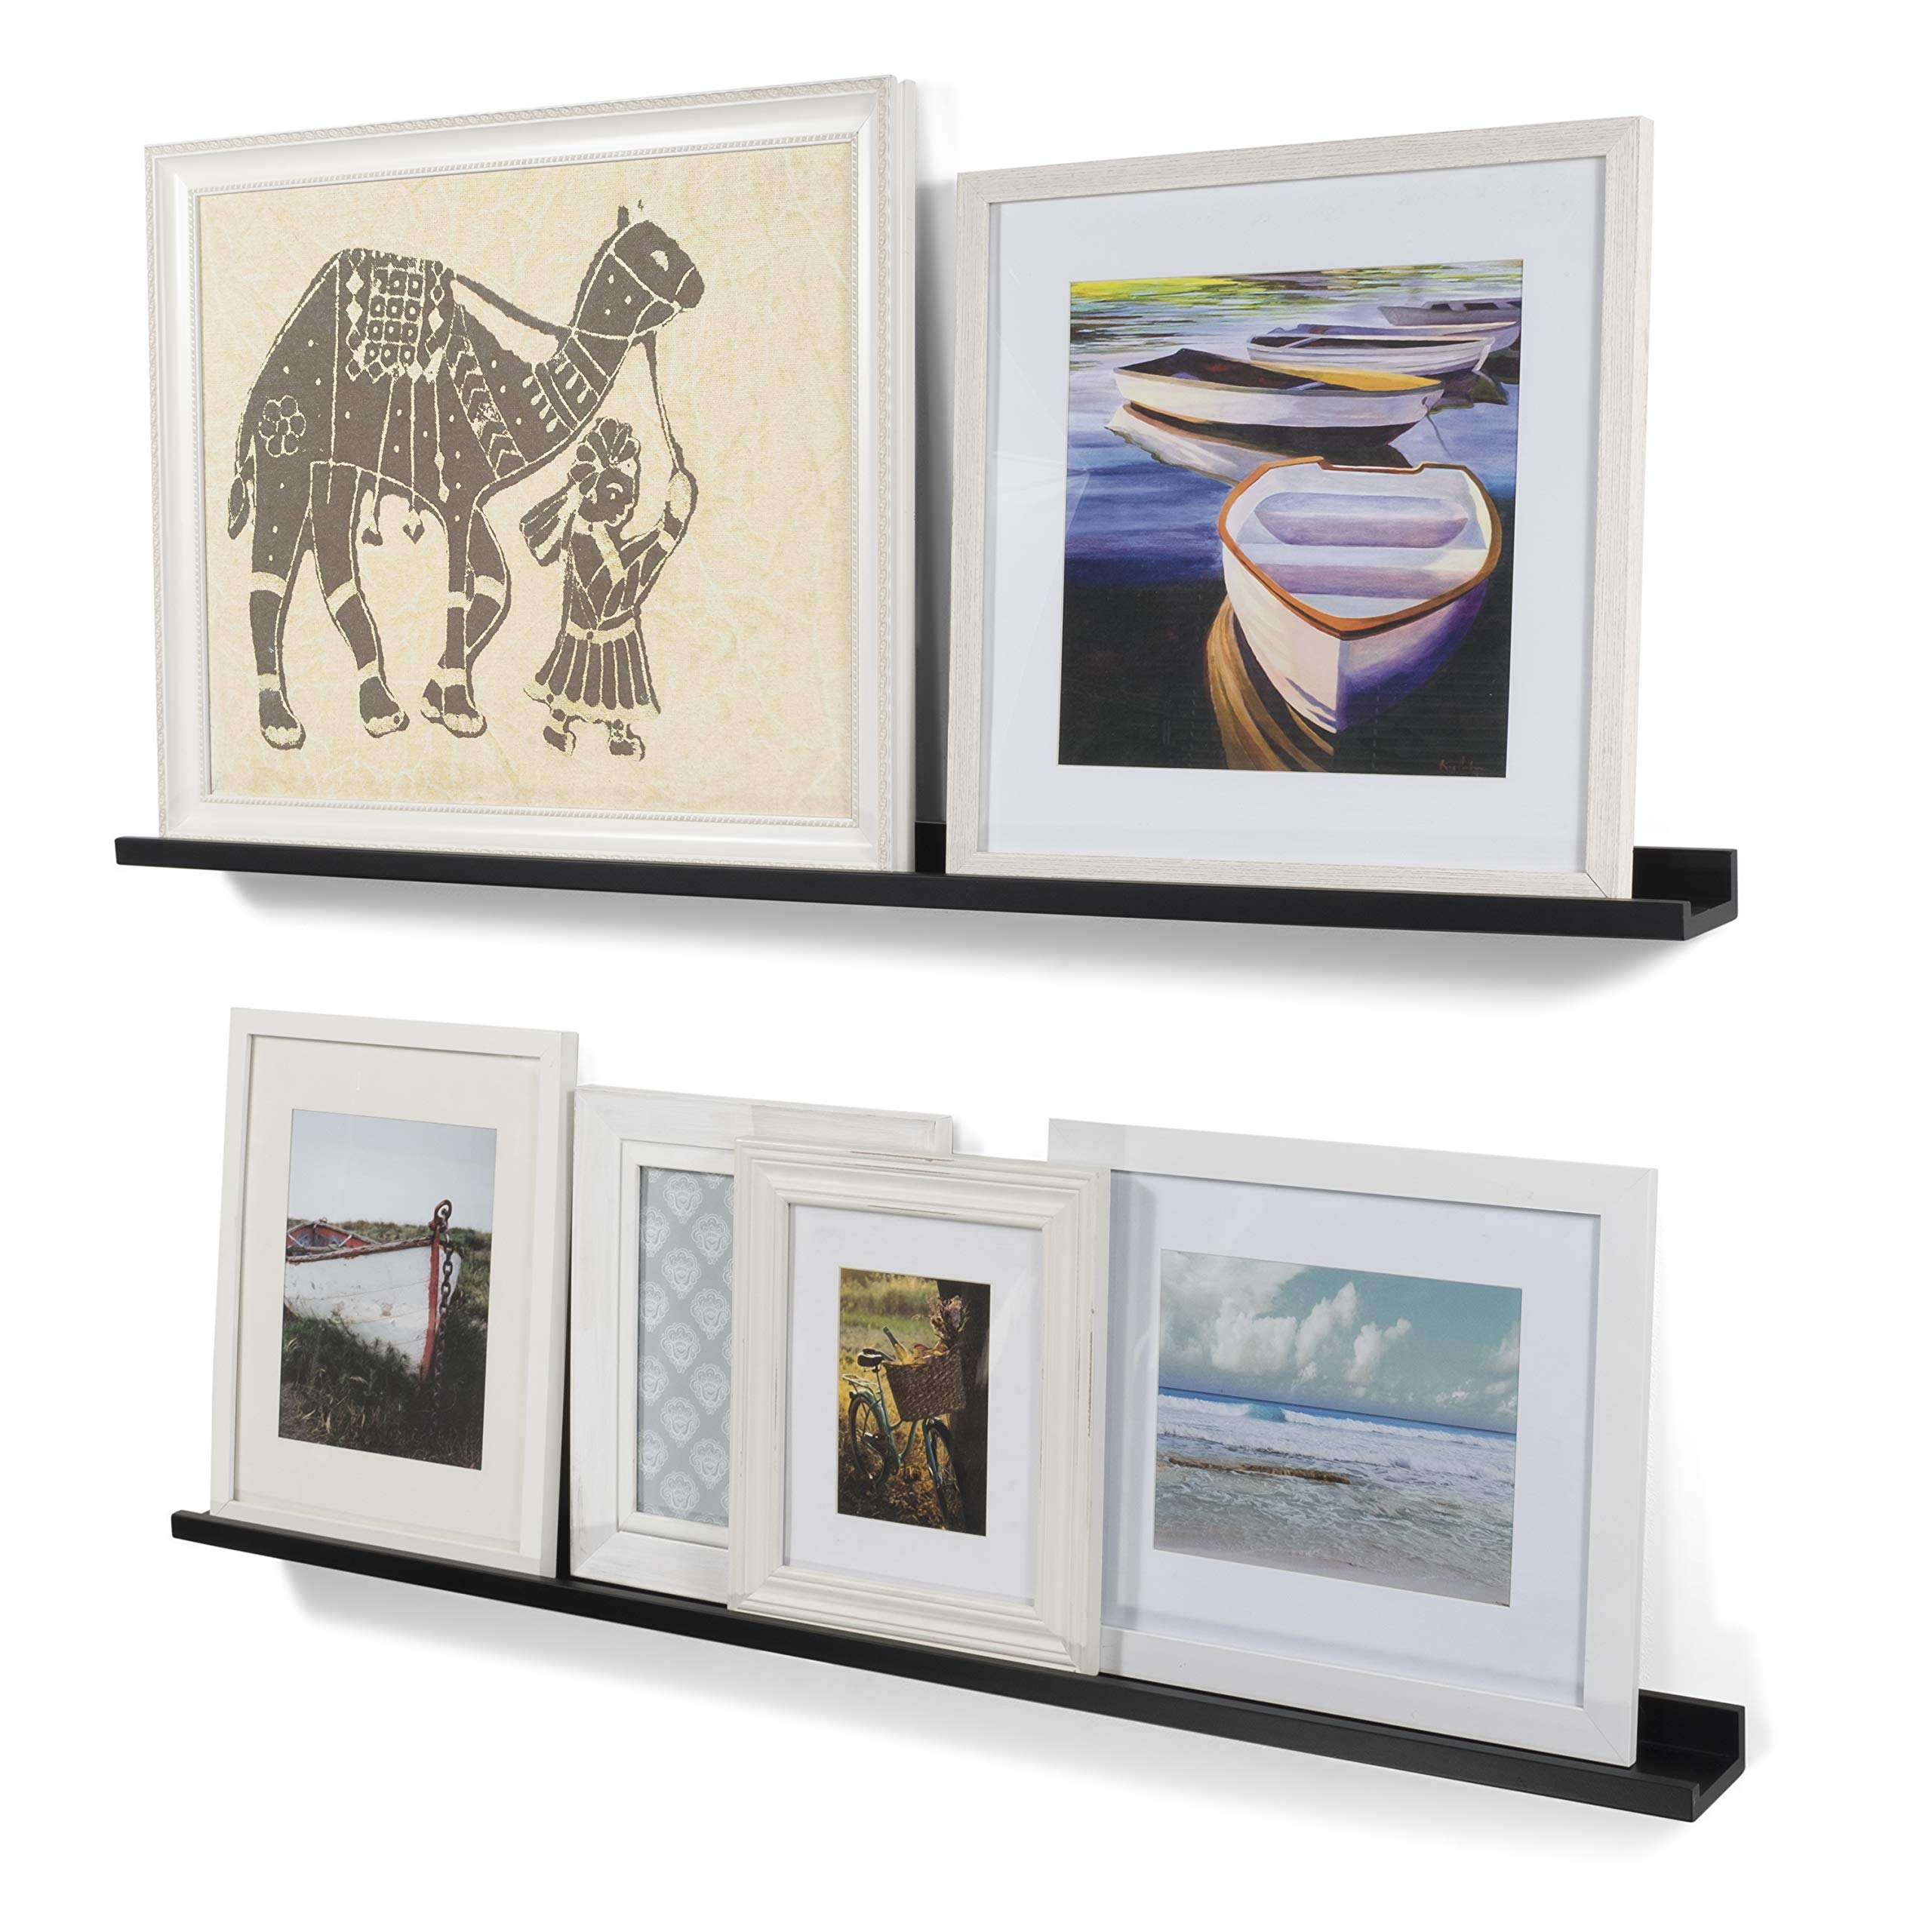 Wallniture Modern Floating Wall Ledge Shelf for Pictures and Frames Black 46 Inch Set of 2 by Wallniture